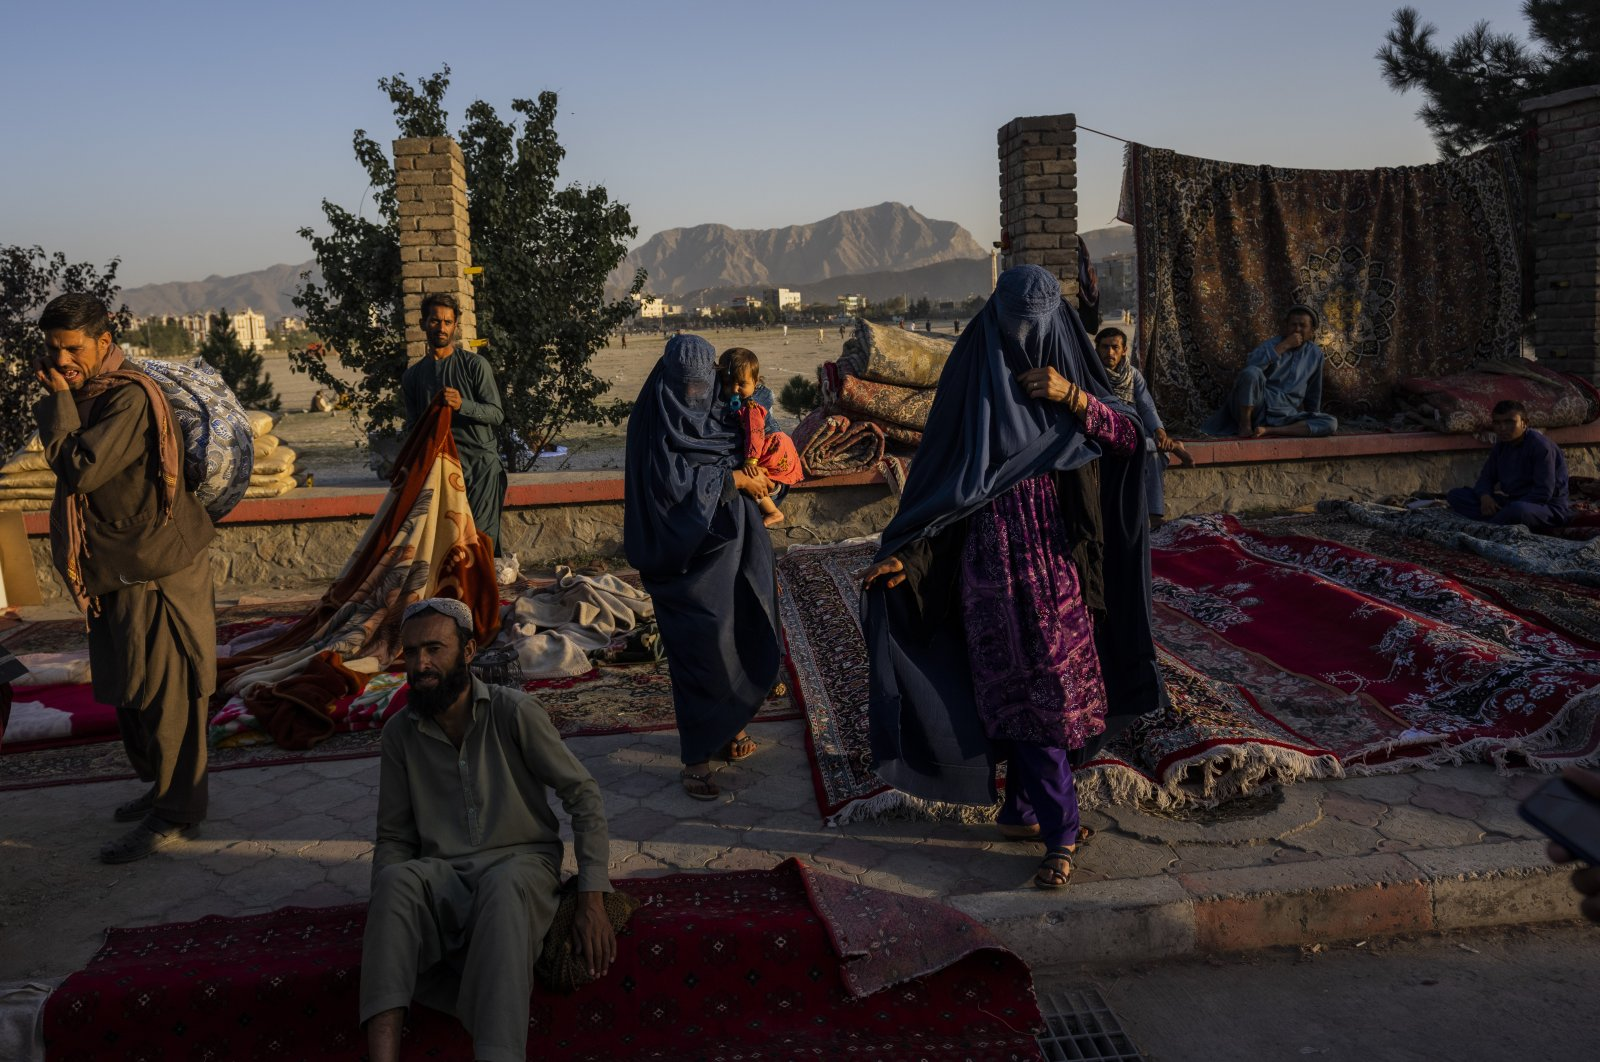 Afghan women walk through a second-hand market where many families sold their belongings before leaving the country or due to financial struggle, in Kabul, Afghanistan, Sept. 15, 2021. (AP Photo)